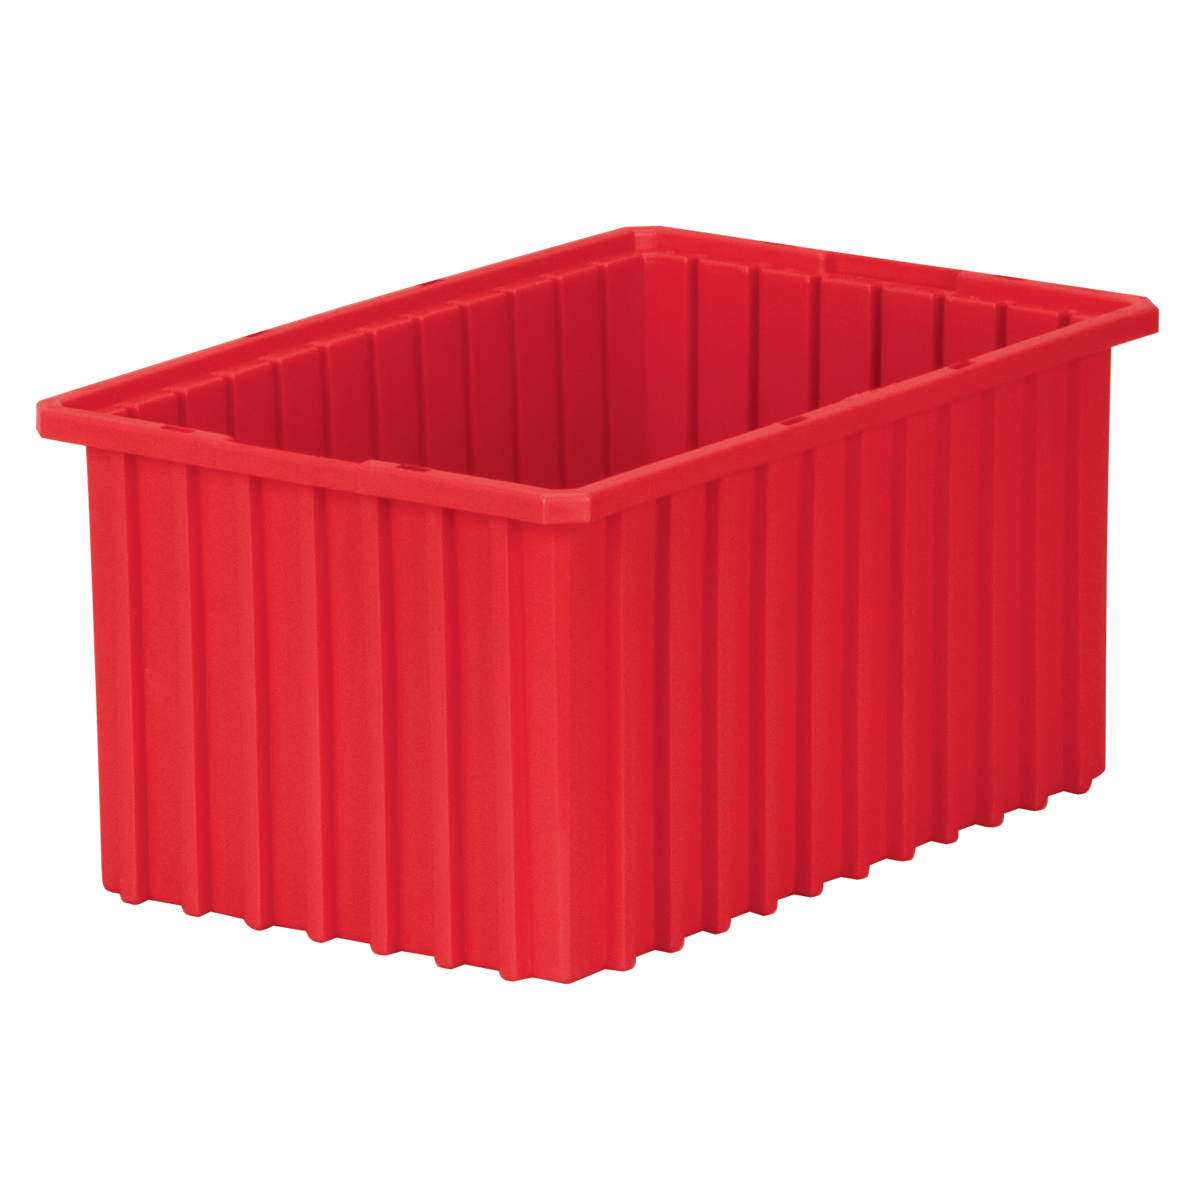 Akro-Grid Dividable Box 16-1/2 x 10-7/8 x 8, Red (33168RED).  This item sold in carton quantities of 6.